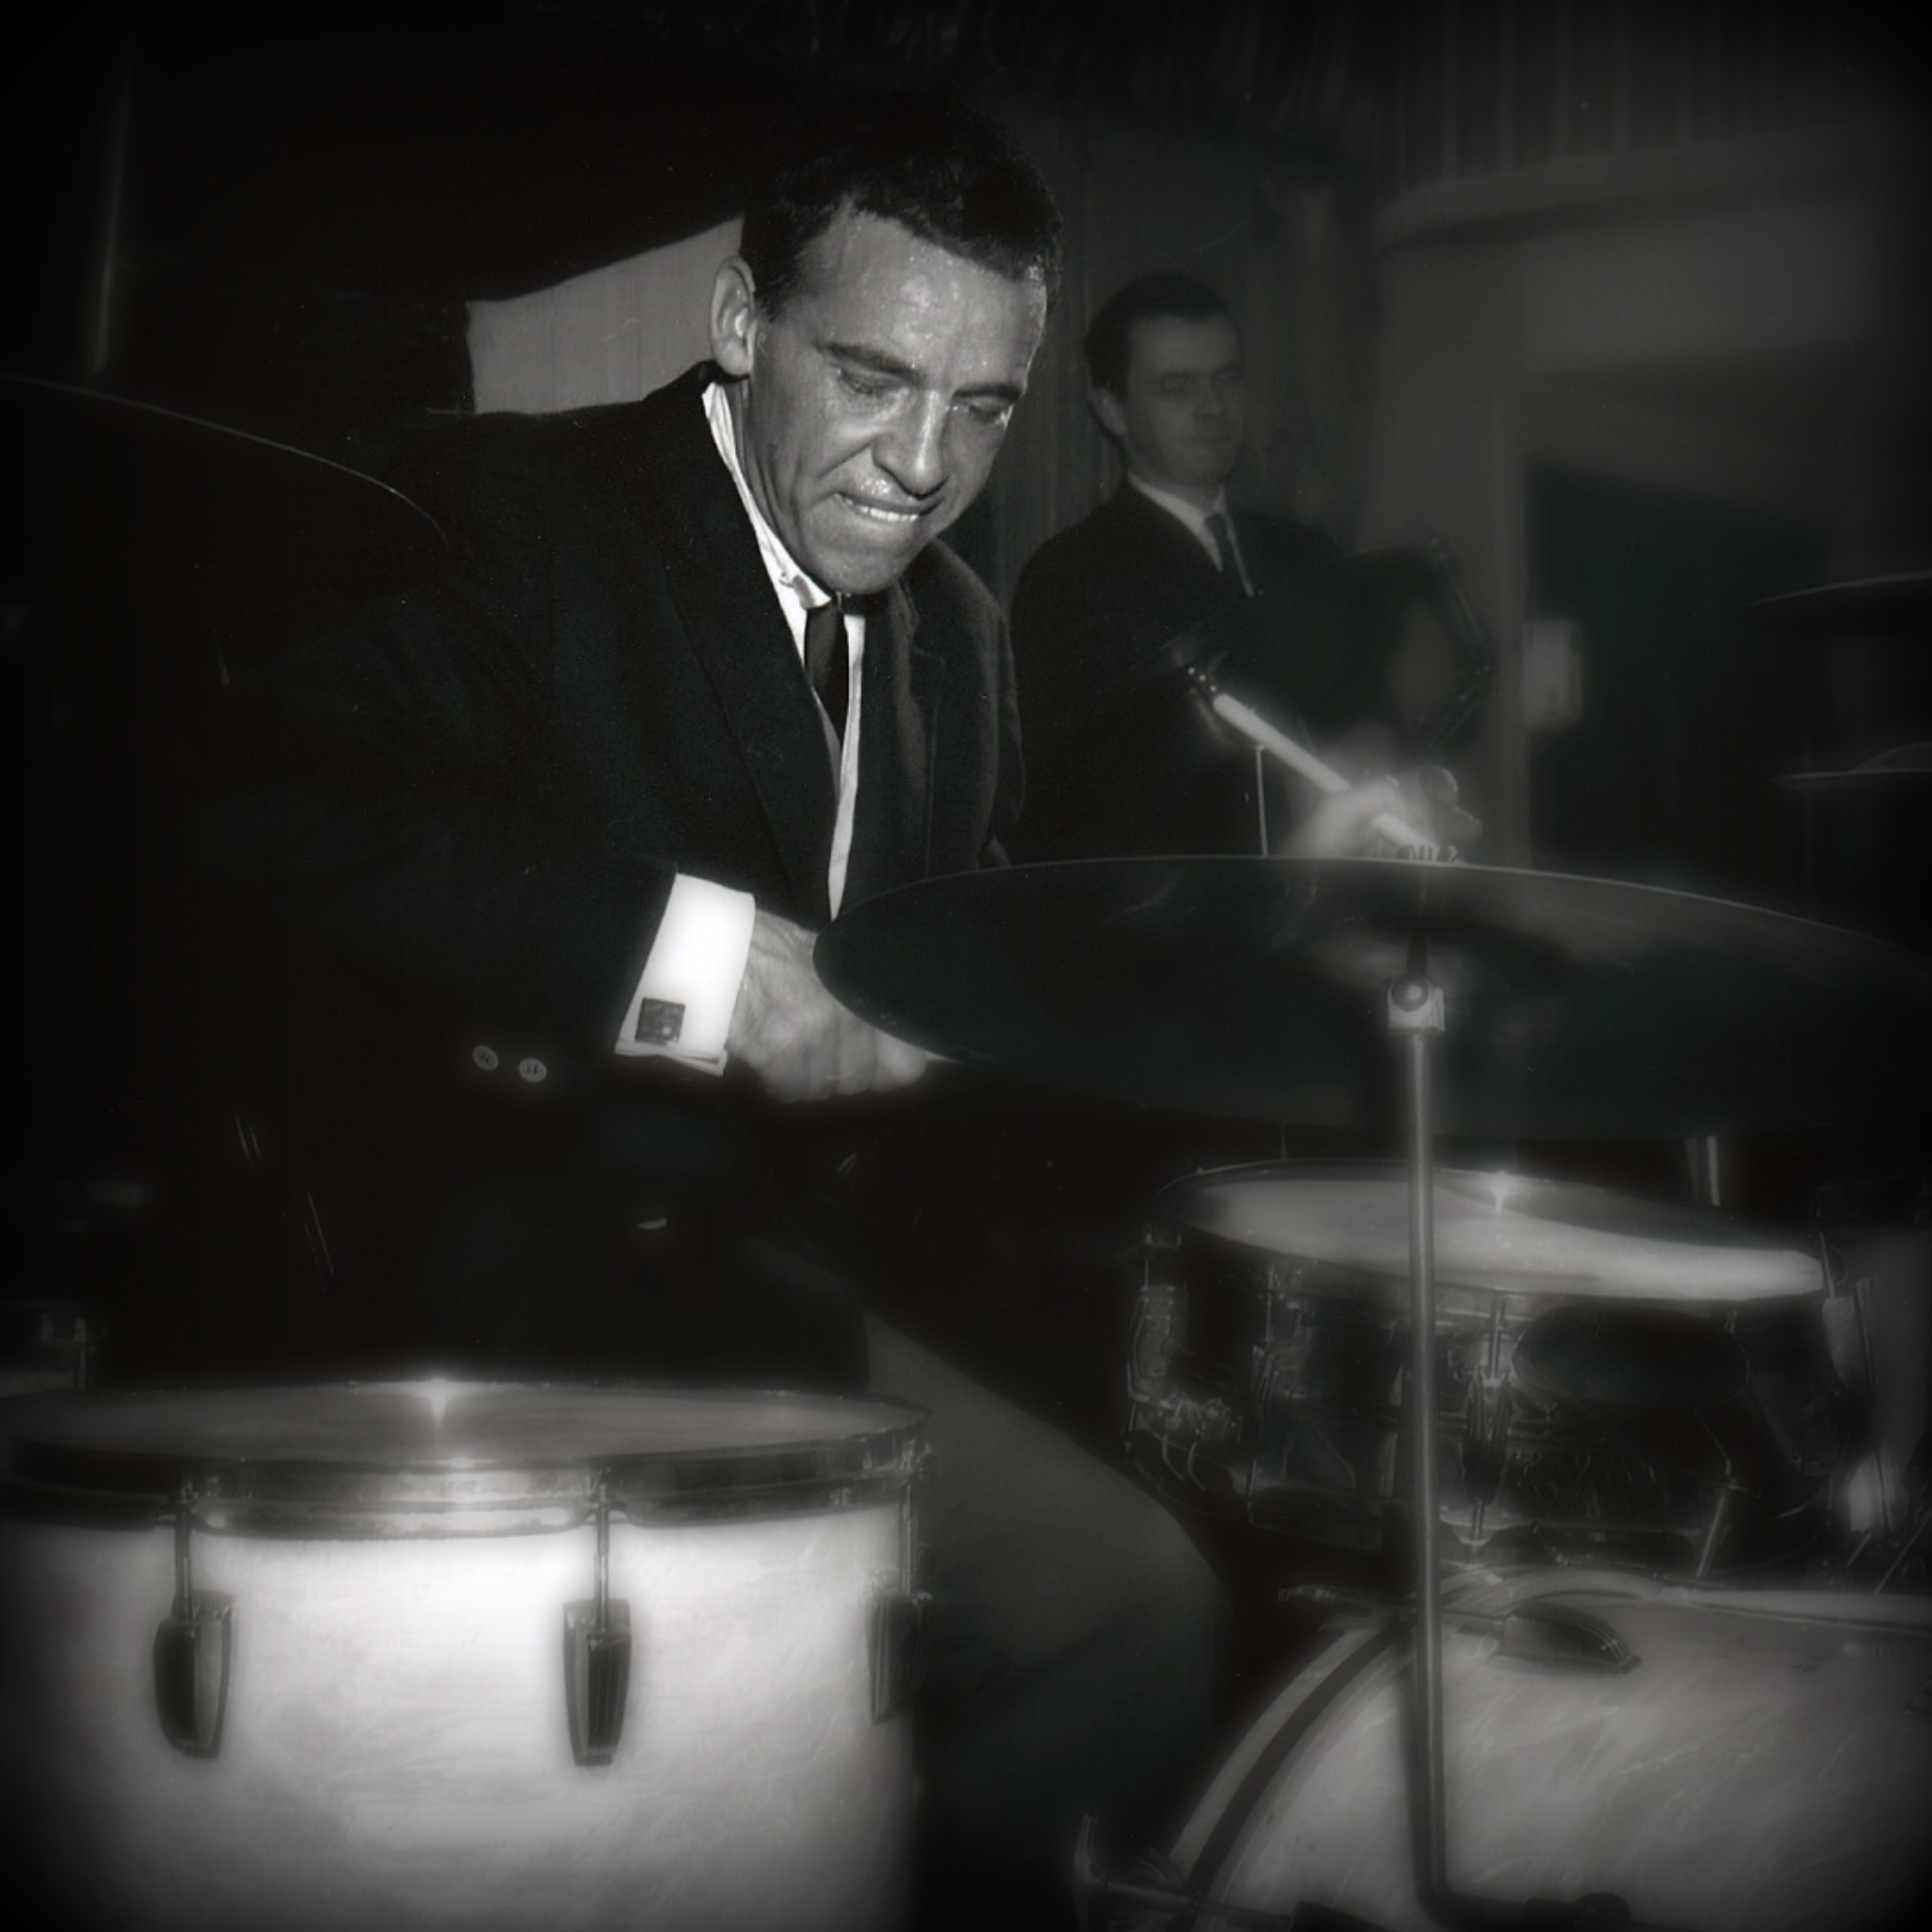 Buddy Rich (1938-1942)